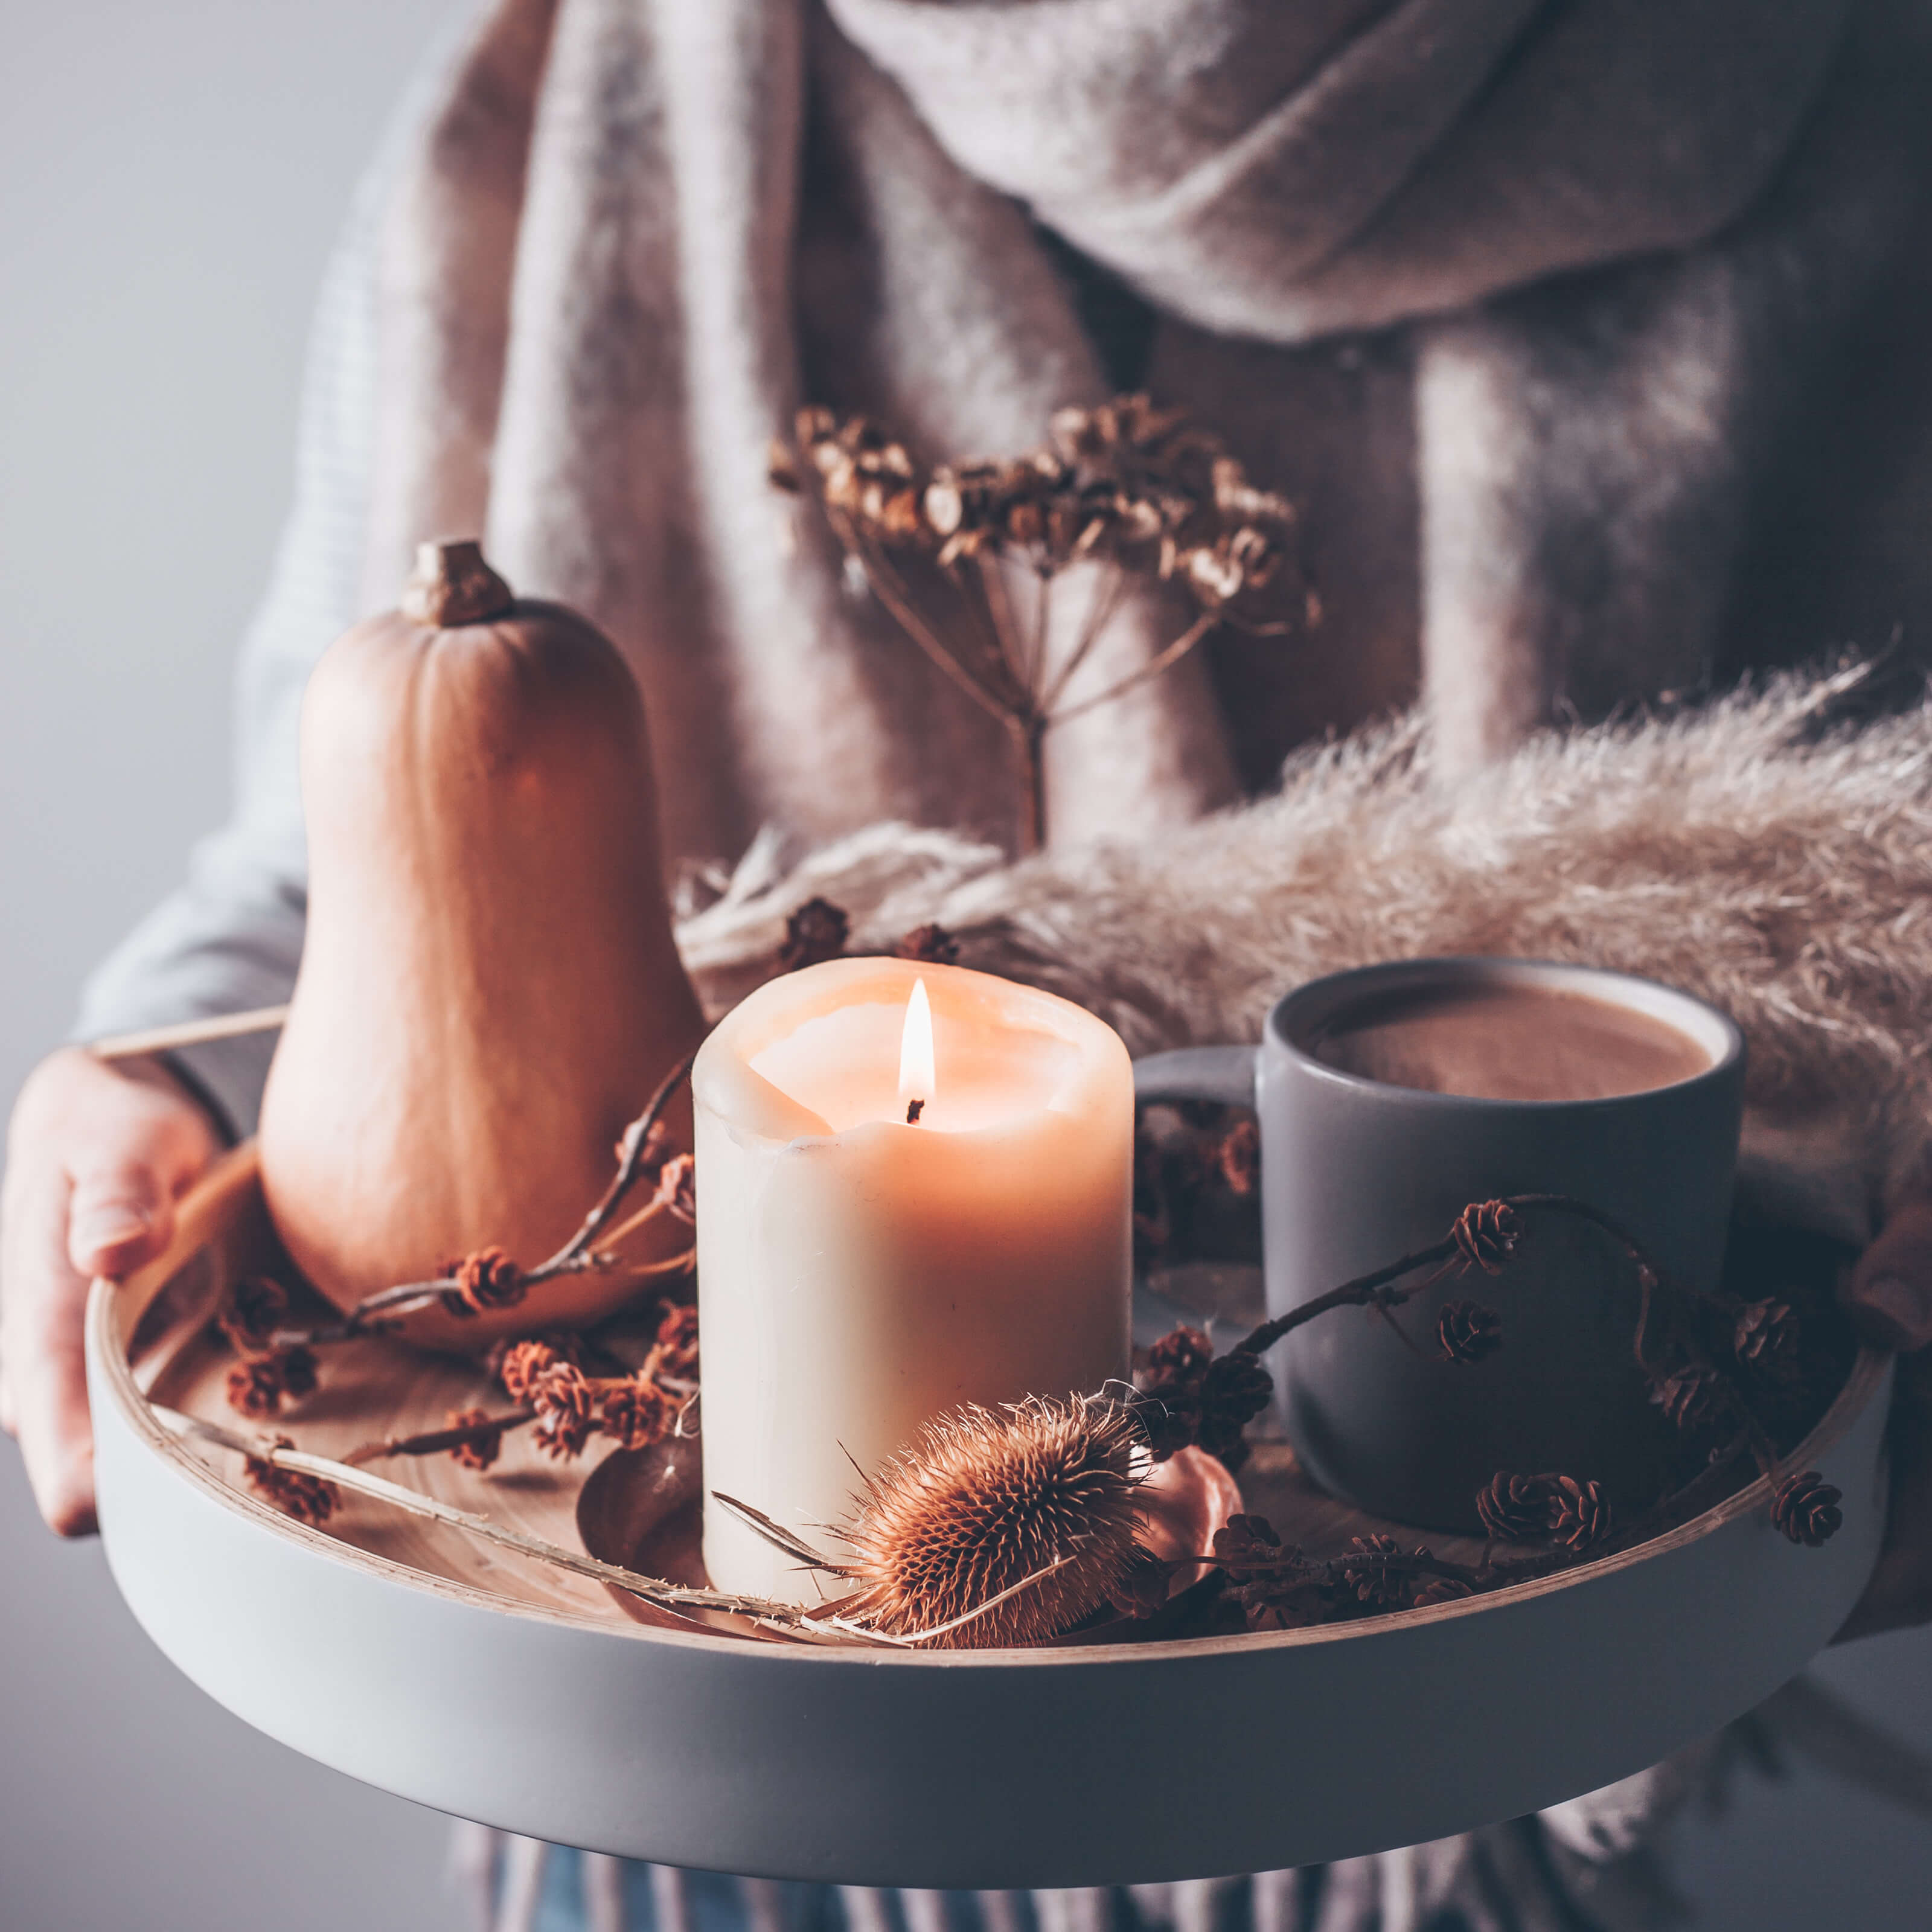 woman holding tray with lit candle, mug of hot chocolate, squash